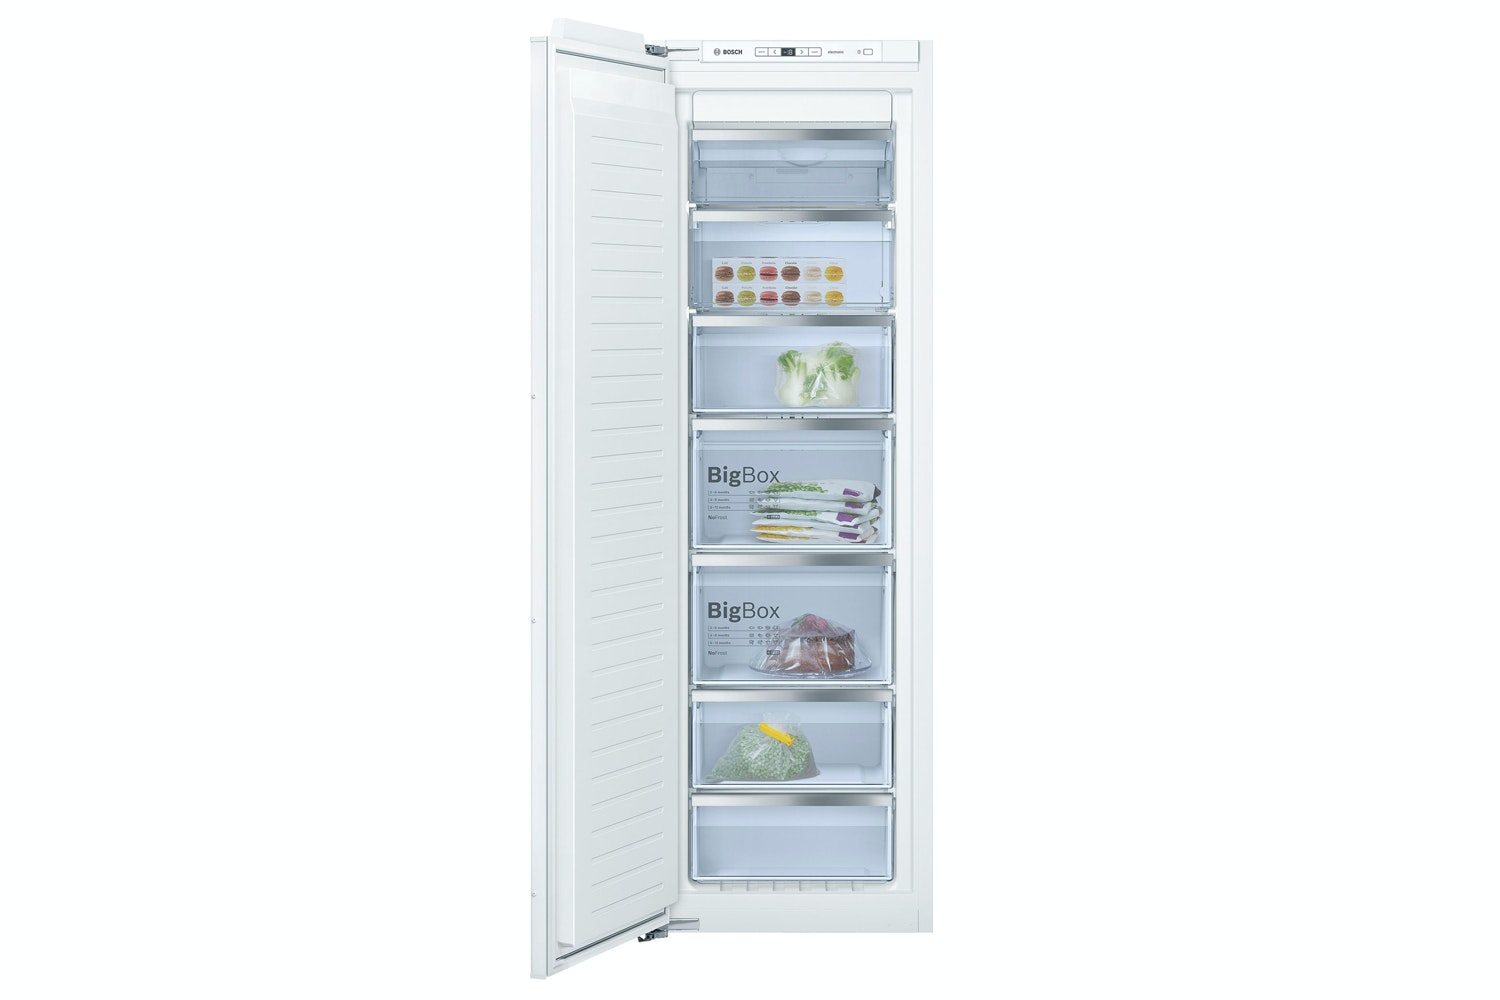 Bosch 150L Series 6 Built-in Upright Freezer | GIN81AE30G